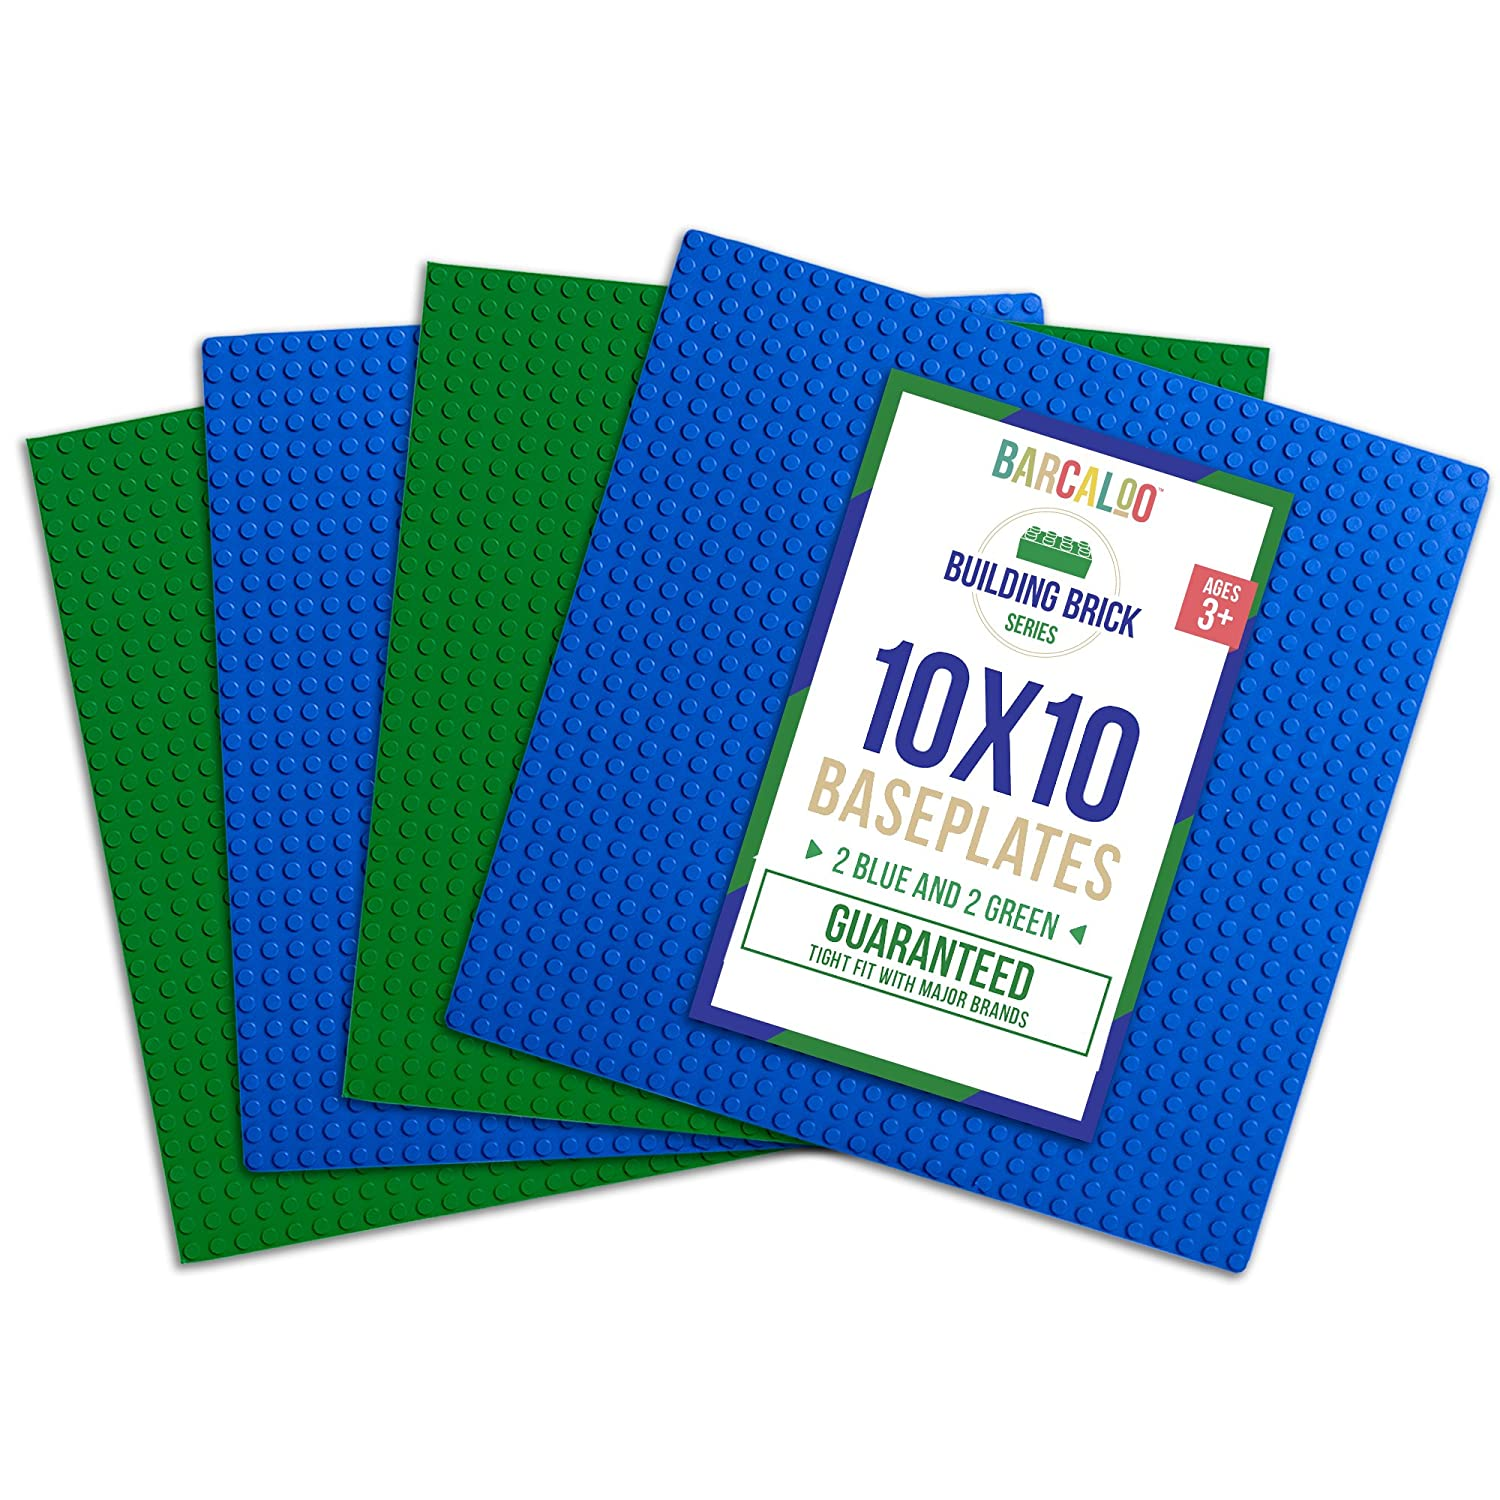 10 Inch x 10 Inch Baseplate for Building Bricks - 4 Pack (2 Blue, 2 Green) Compatible with all Major Brands Review